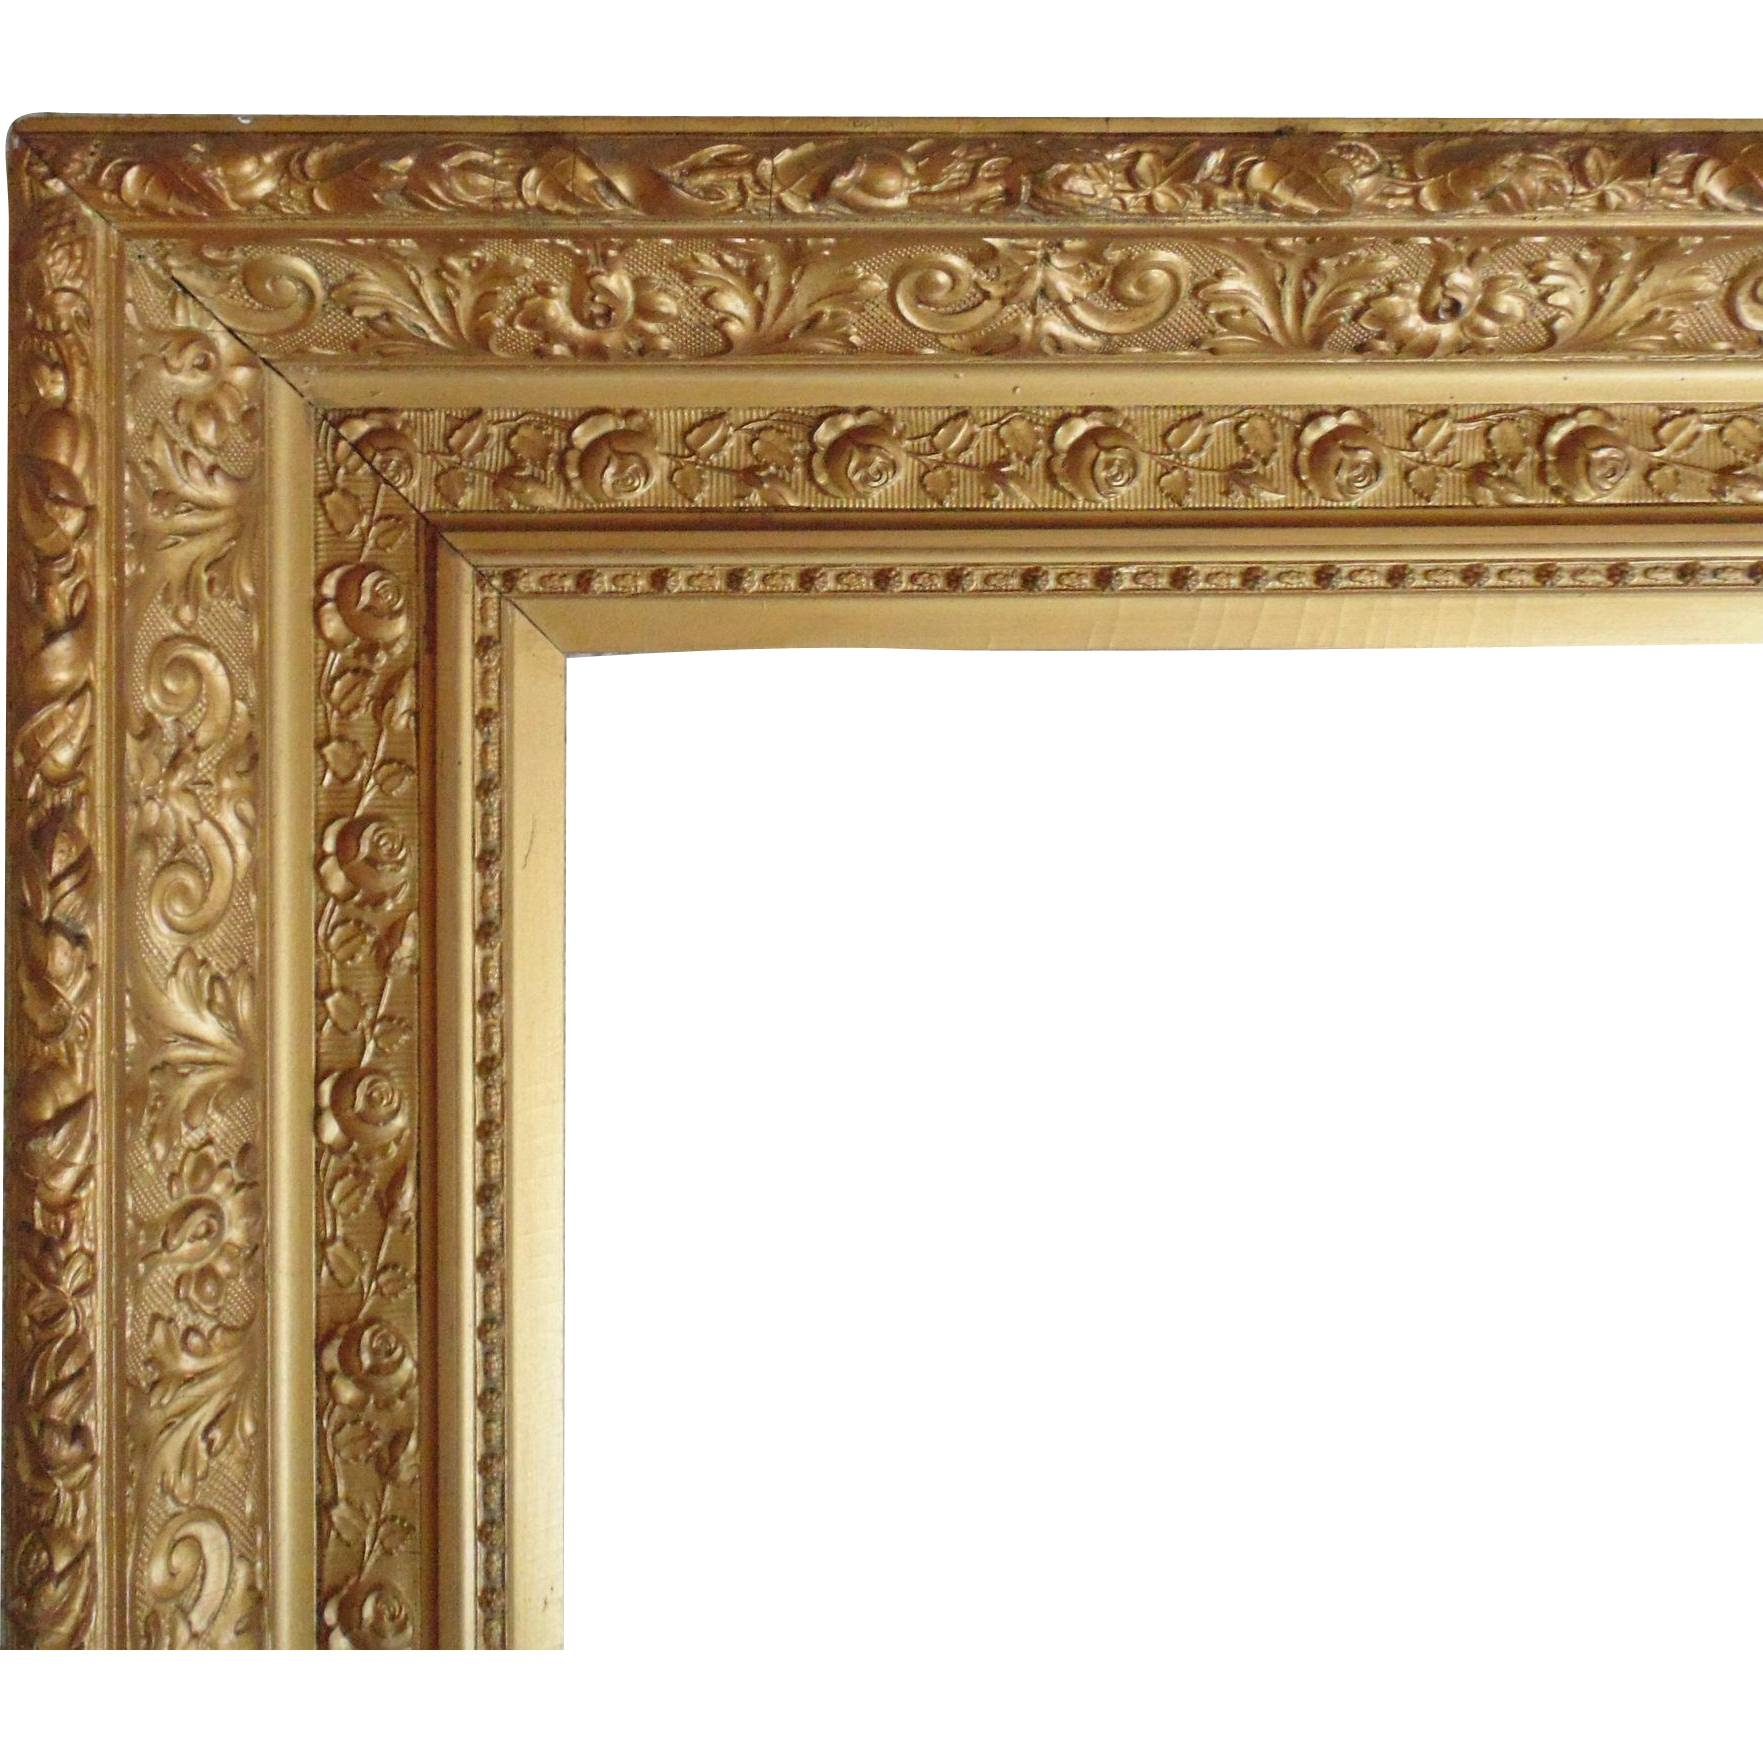 Large 19C Antique Picture Frame Gilt Wood & Gesso Victorian Roses with regard to Large Gold Antique Mirrors (Image 9 of 15)